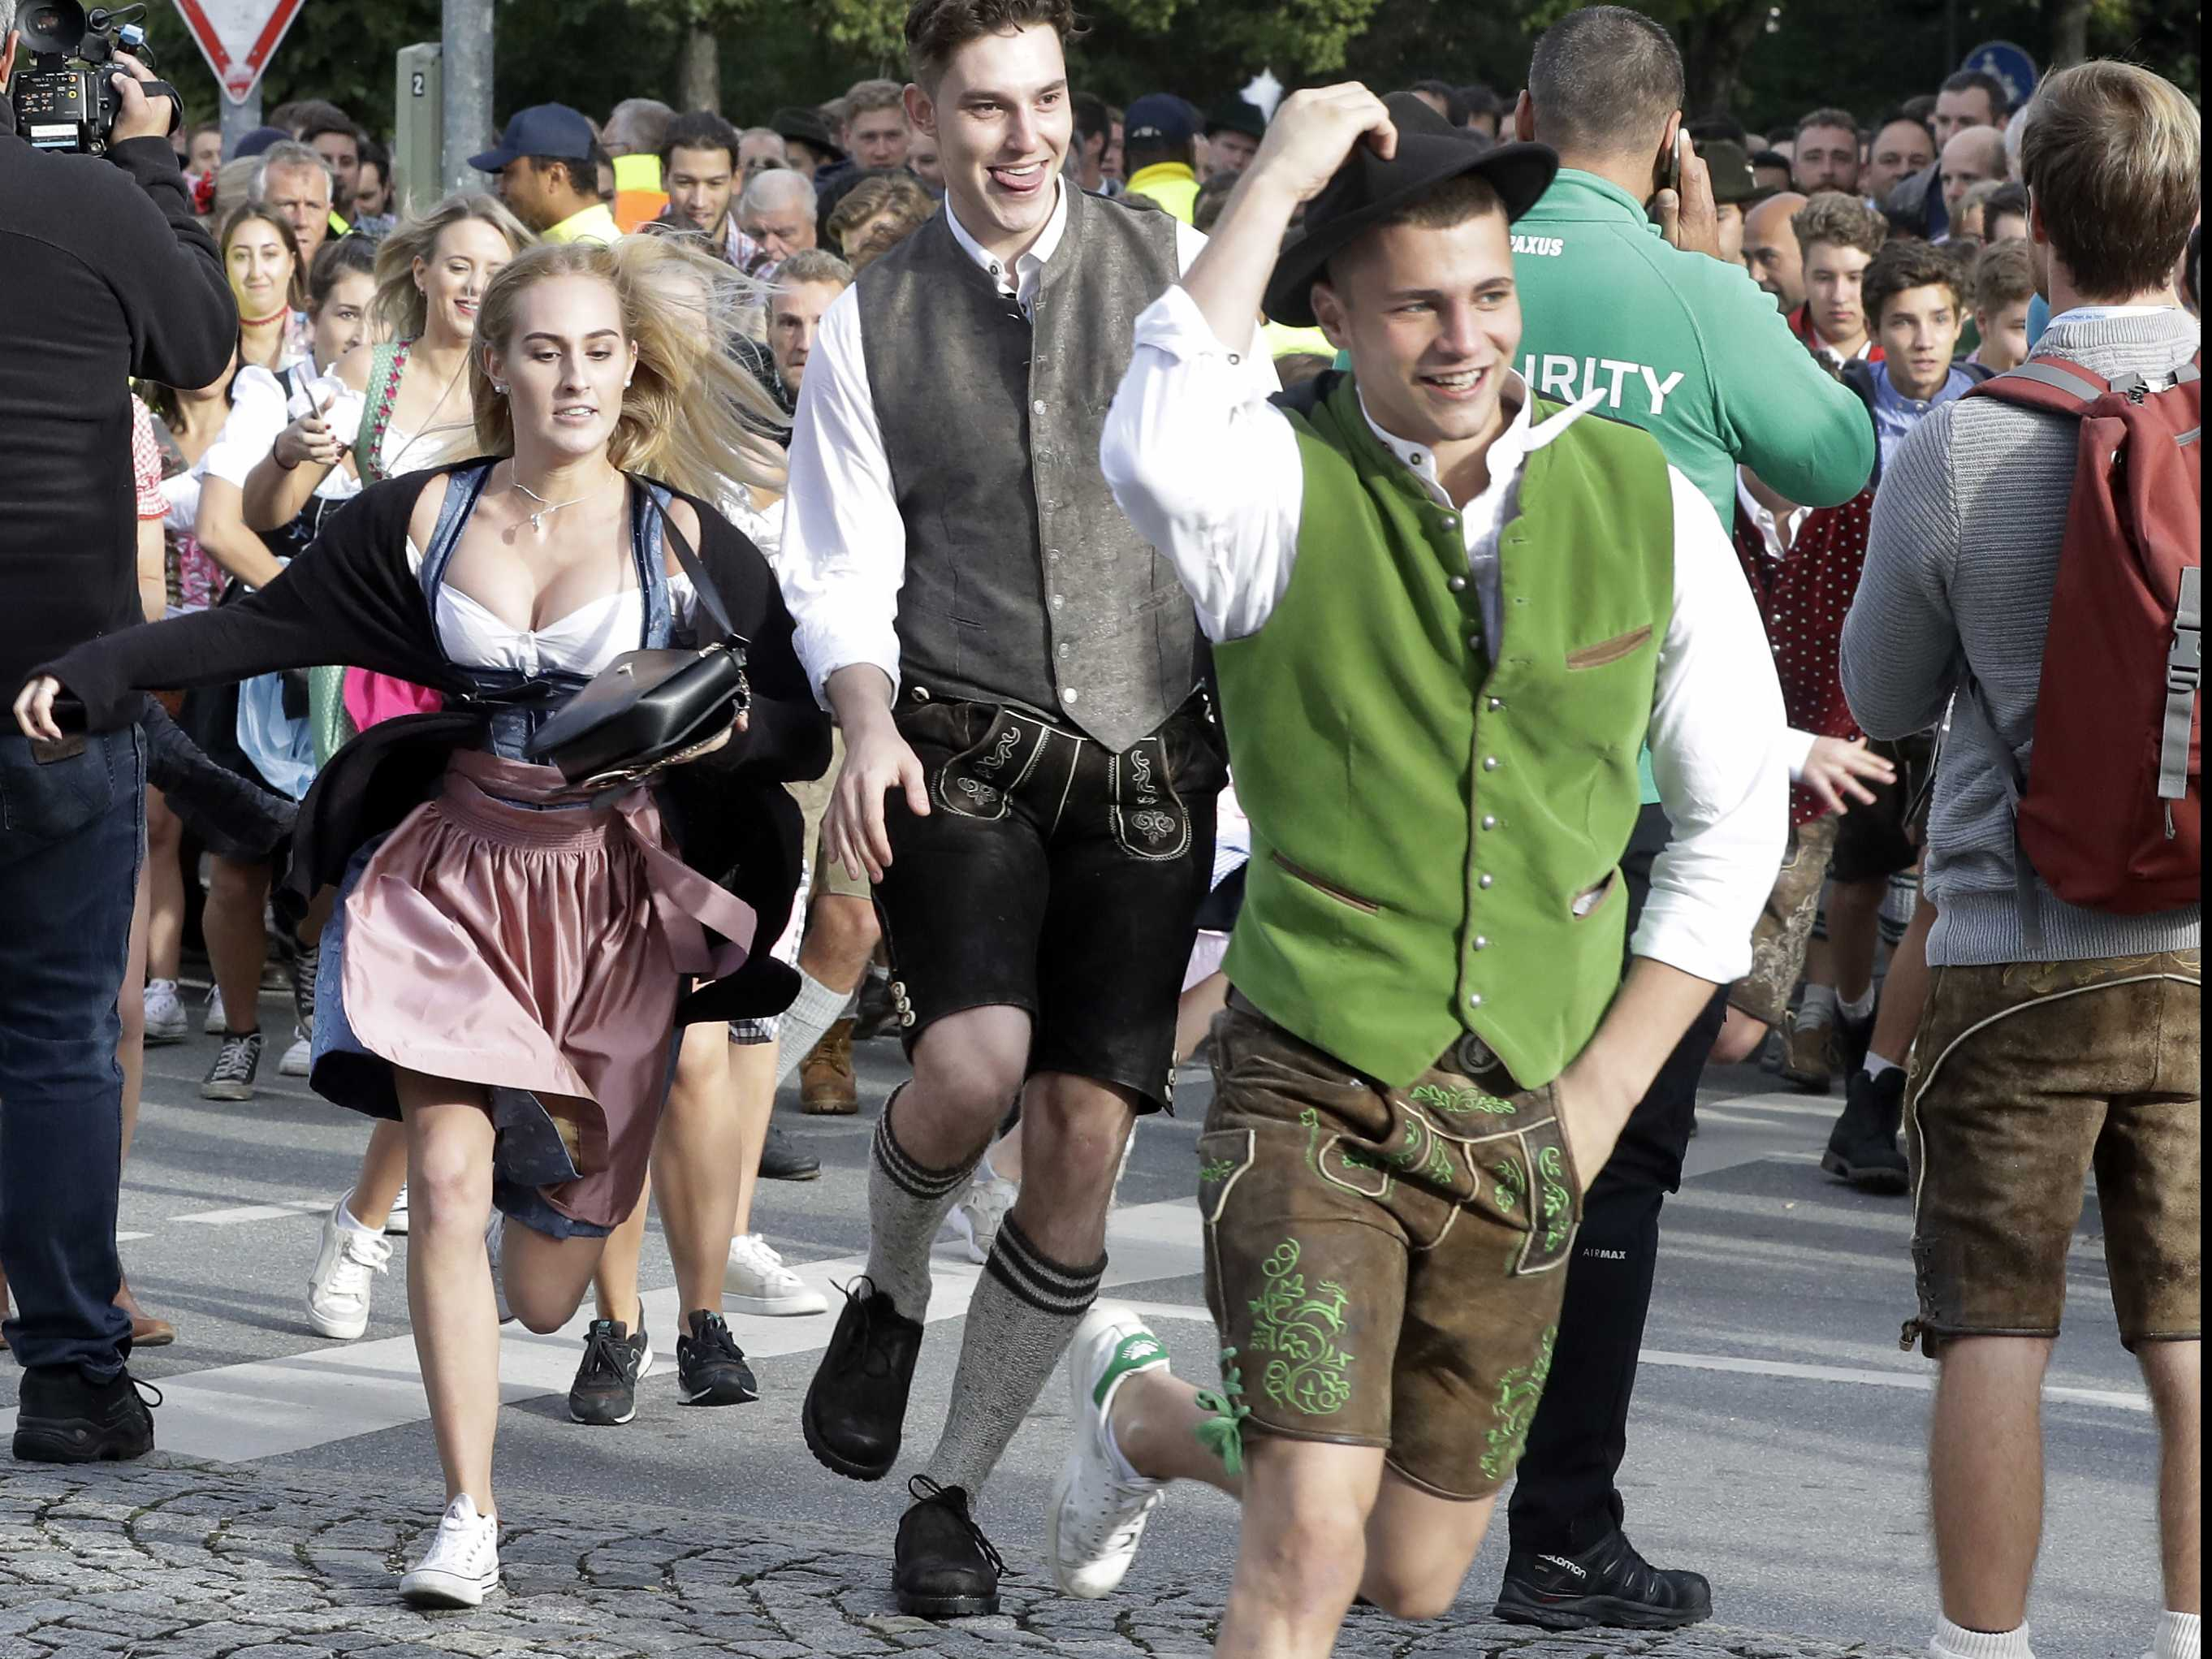 It's Tapped: Beer Flows as Oktoberfest Opens in Munich